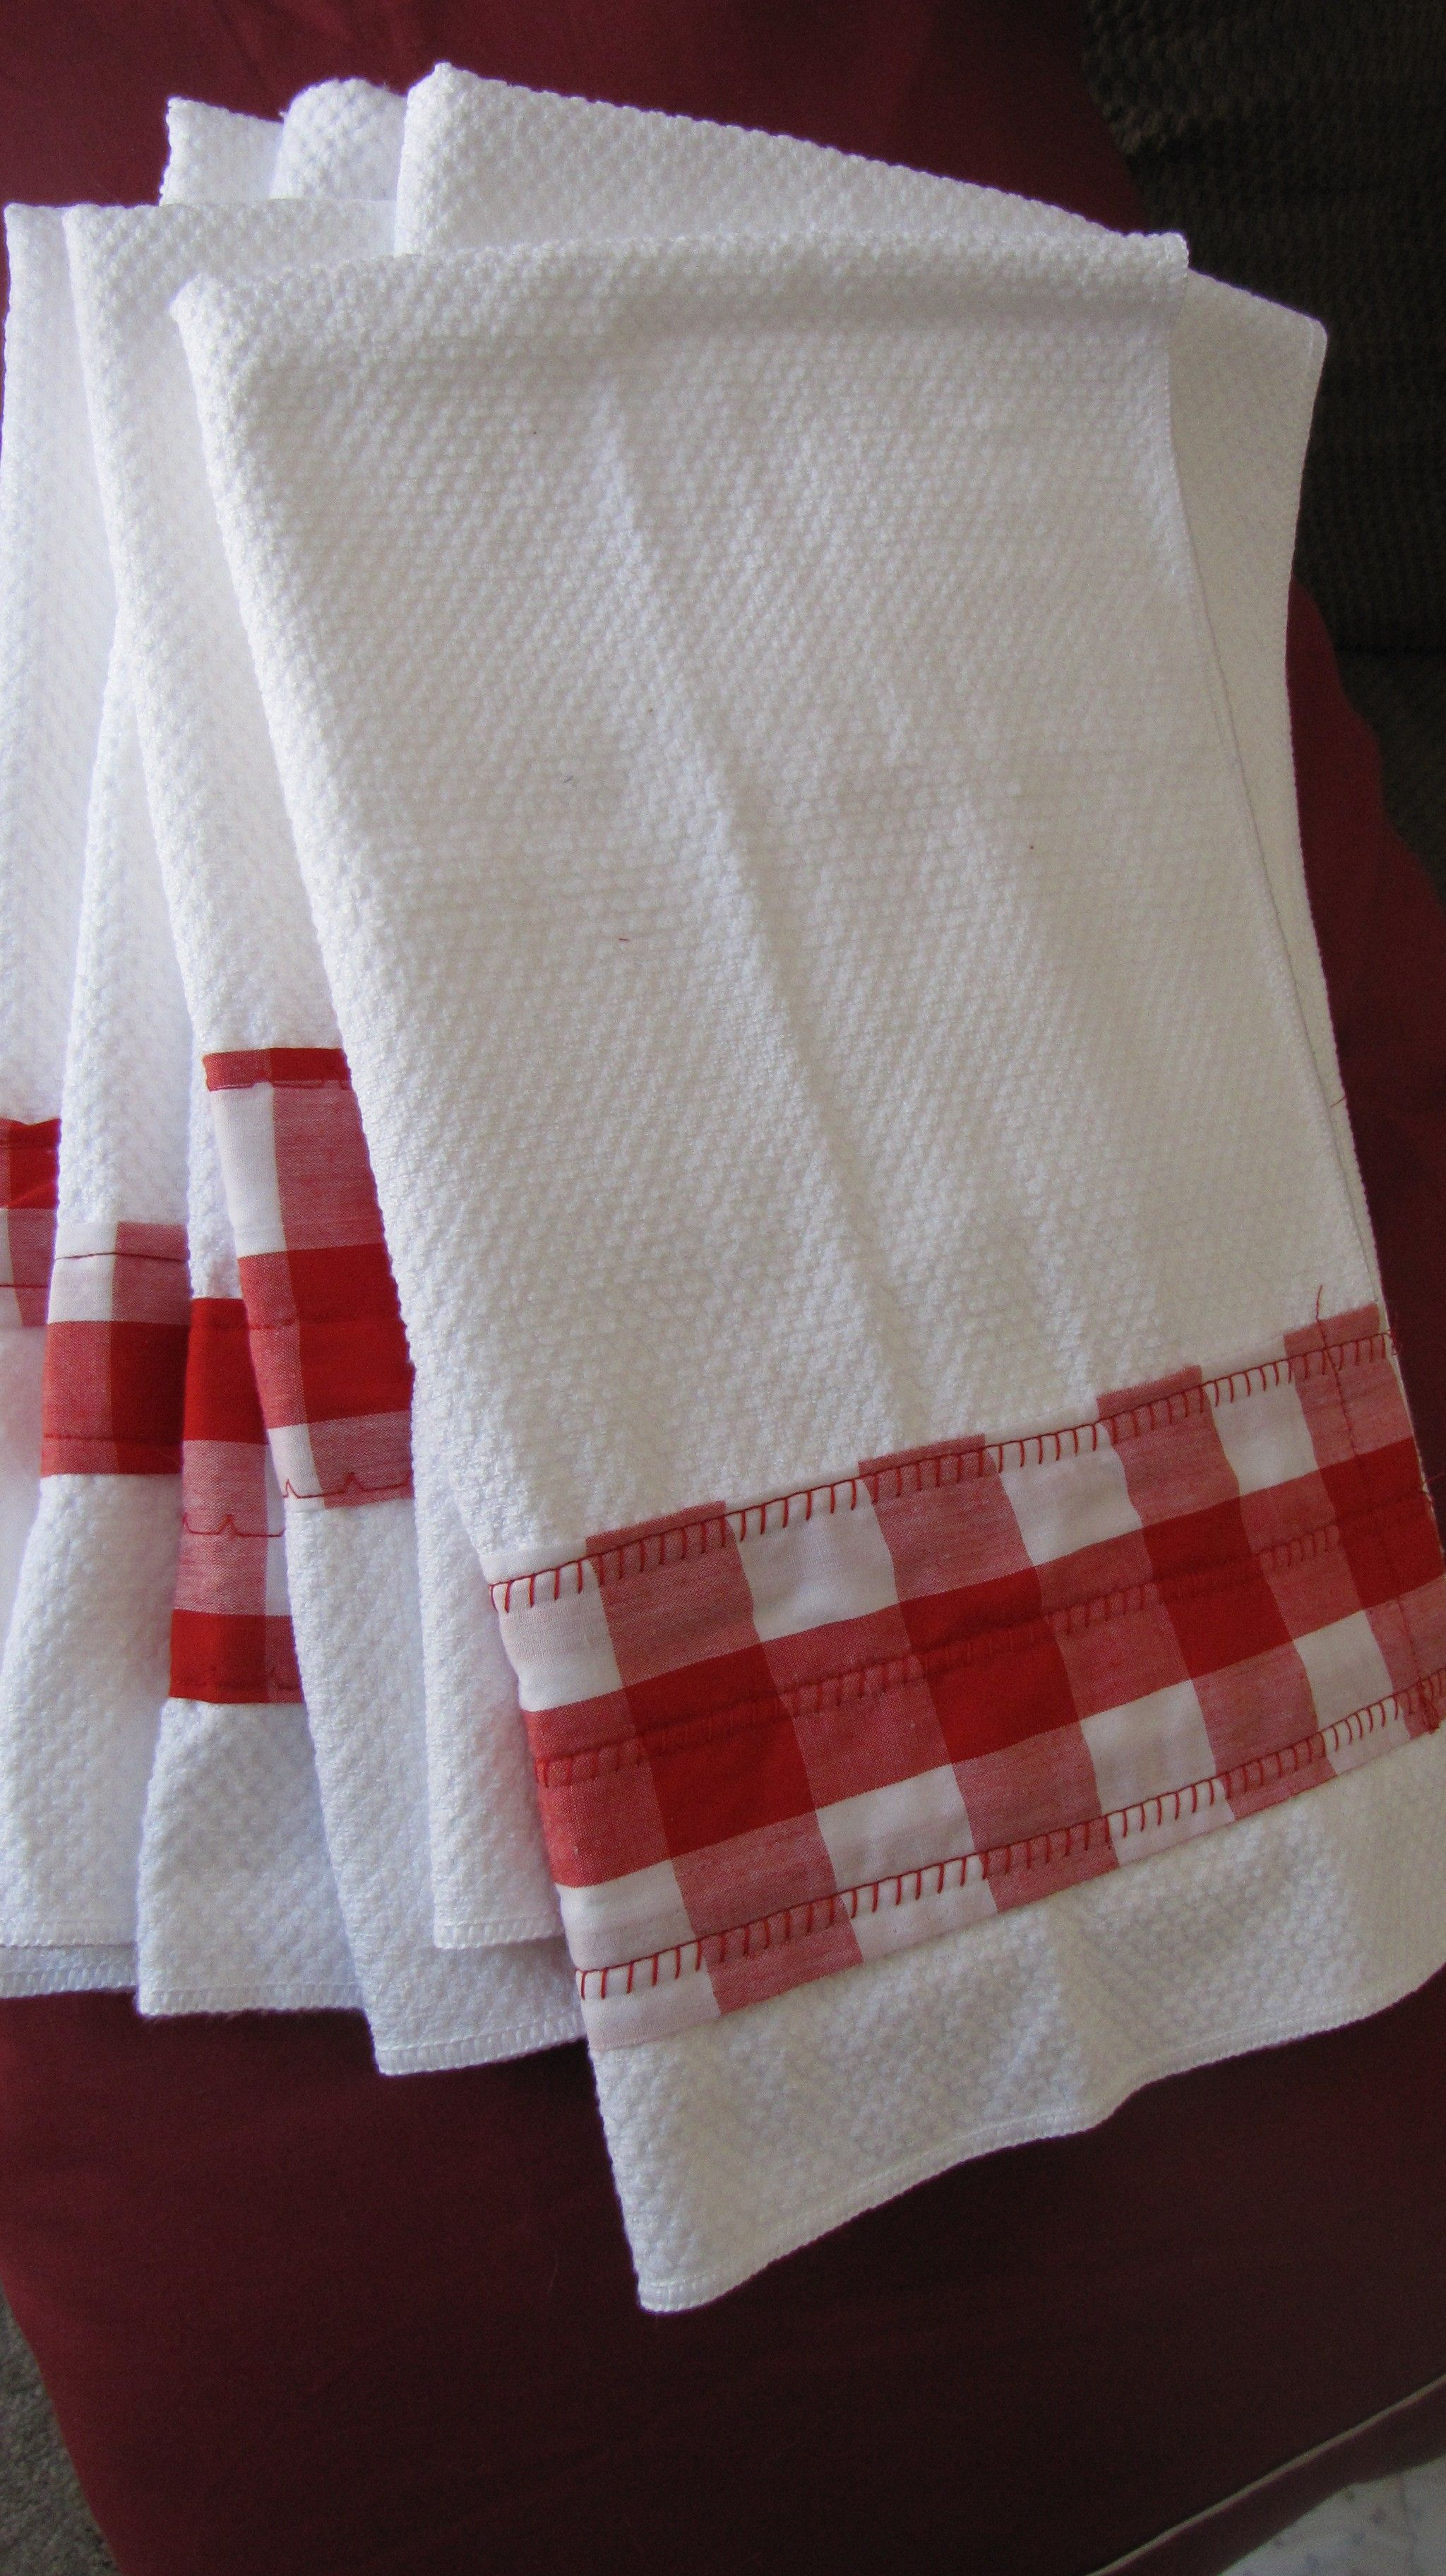 Gingham sewed to cheap WalMart kitchen towels to decorate ...